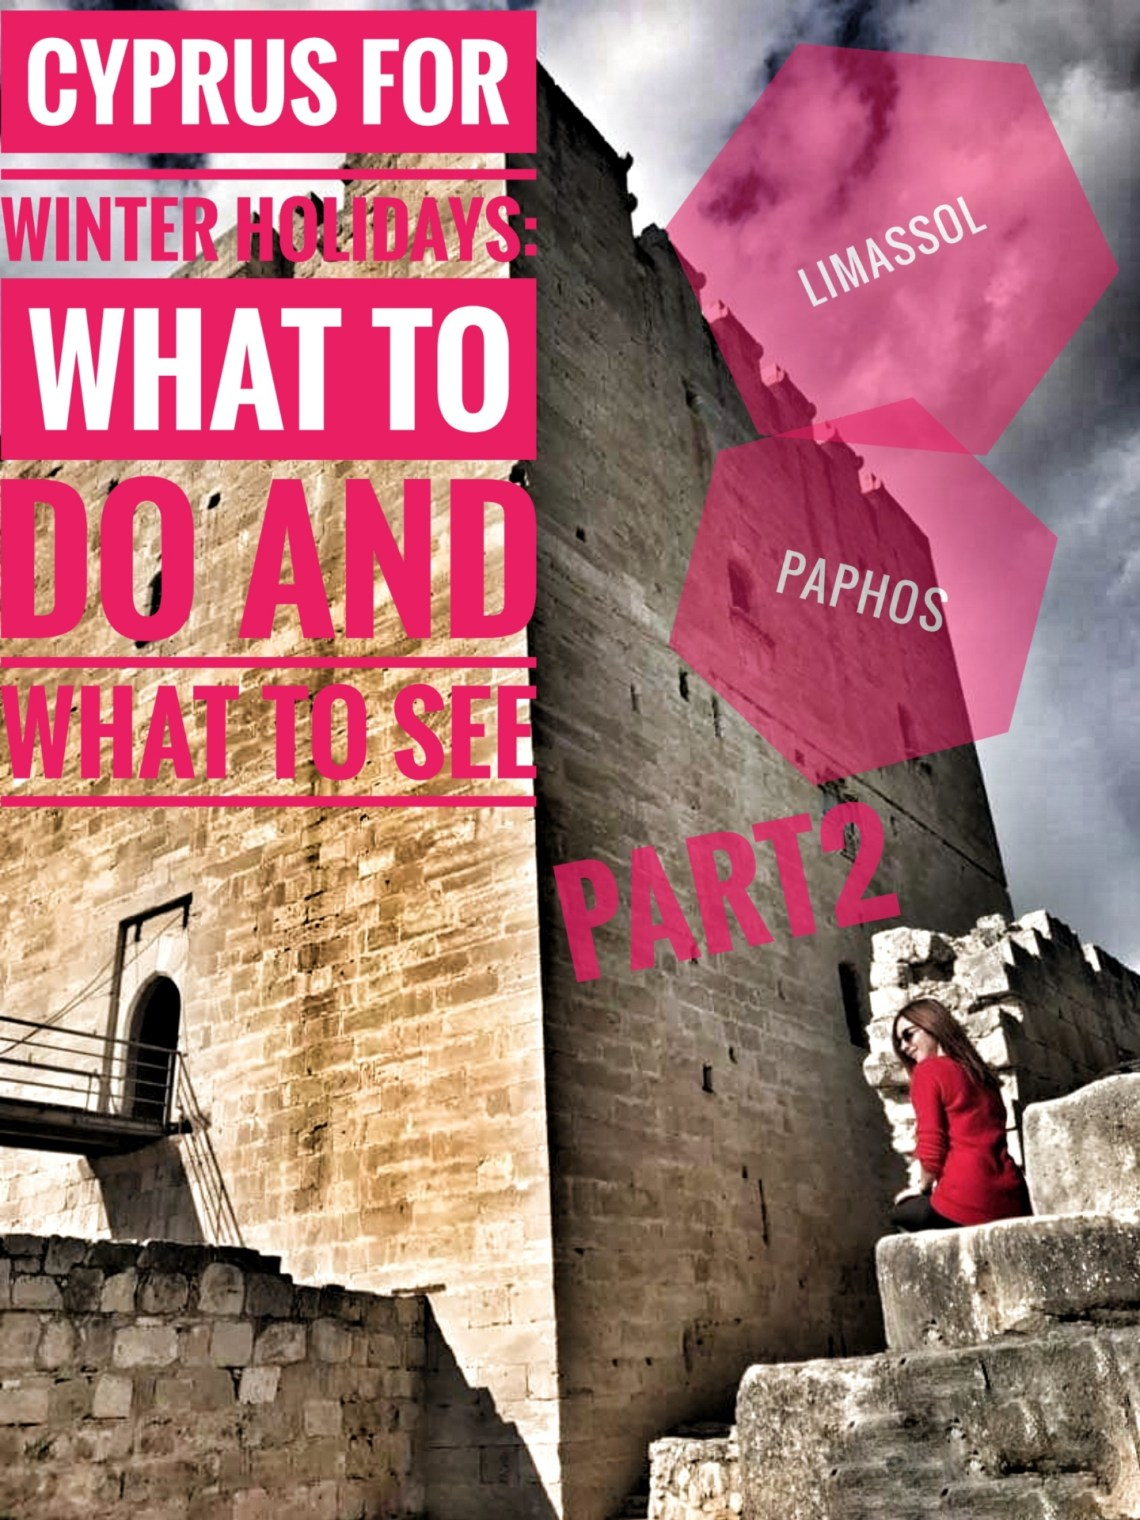 BodyEditor 20181227 213133745 01 01 resized 20190211 063017926 - CYPRUS FOR THE WINTER HOLIDAYS: WHAT TO DO AND WHAT TO SEE